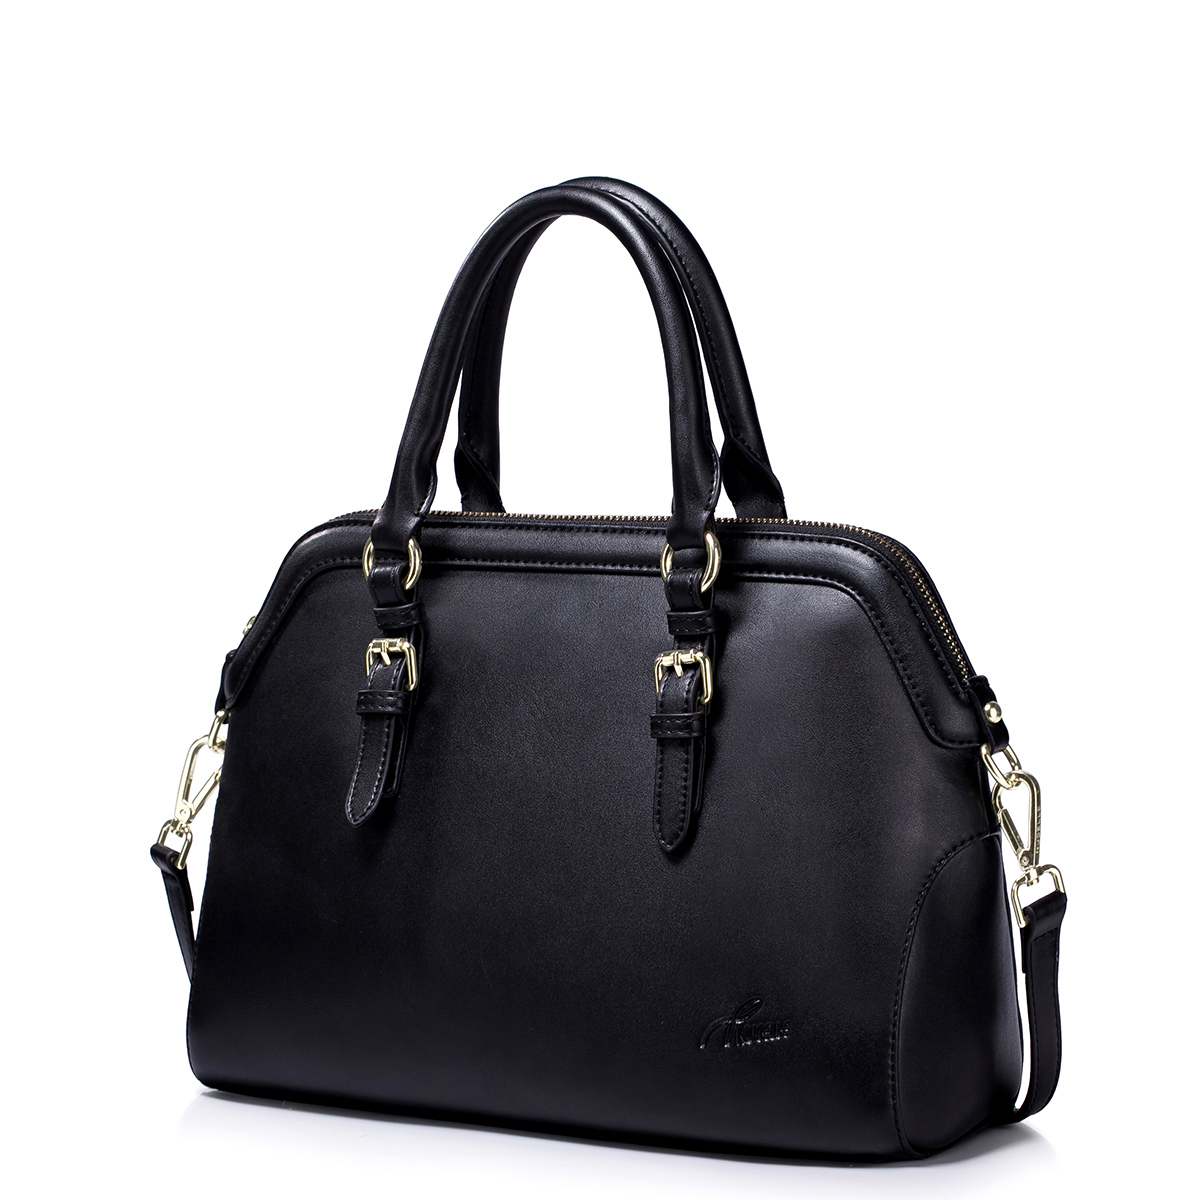 NUCELLE Cowhide leather handbag Black